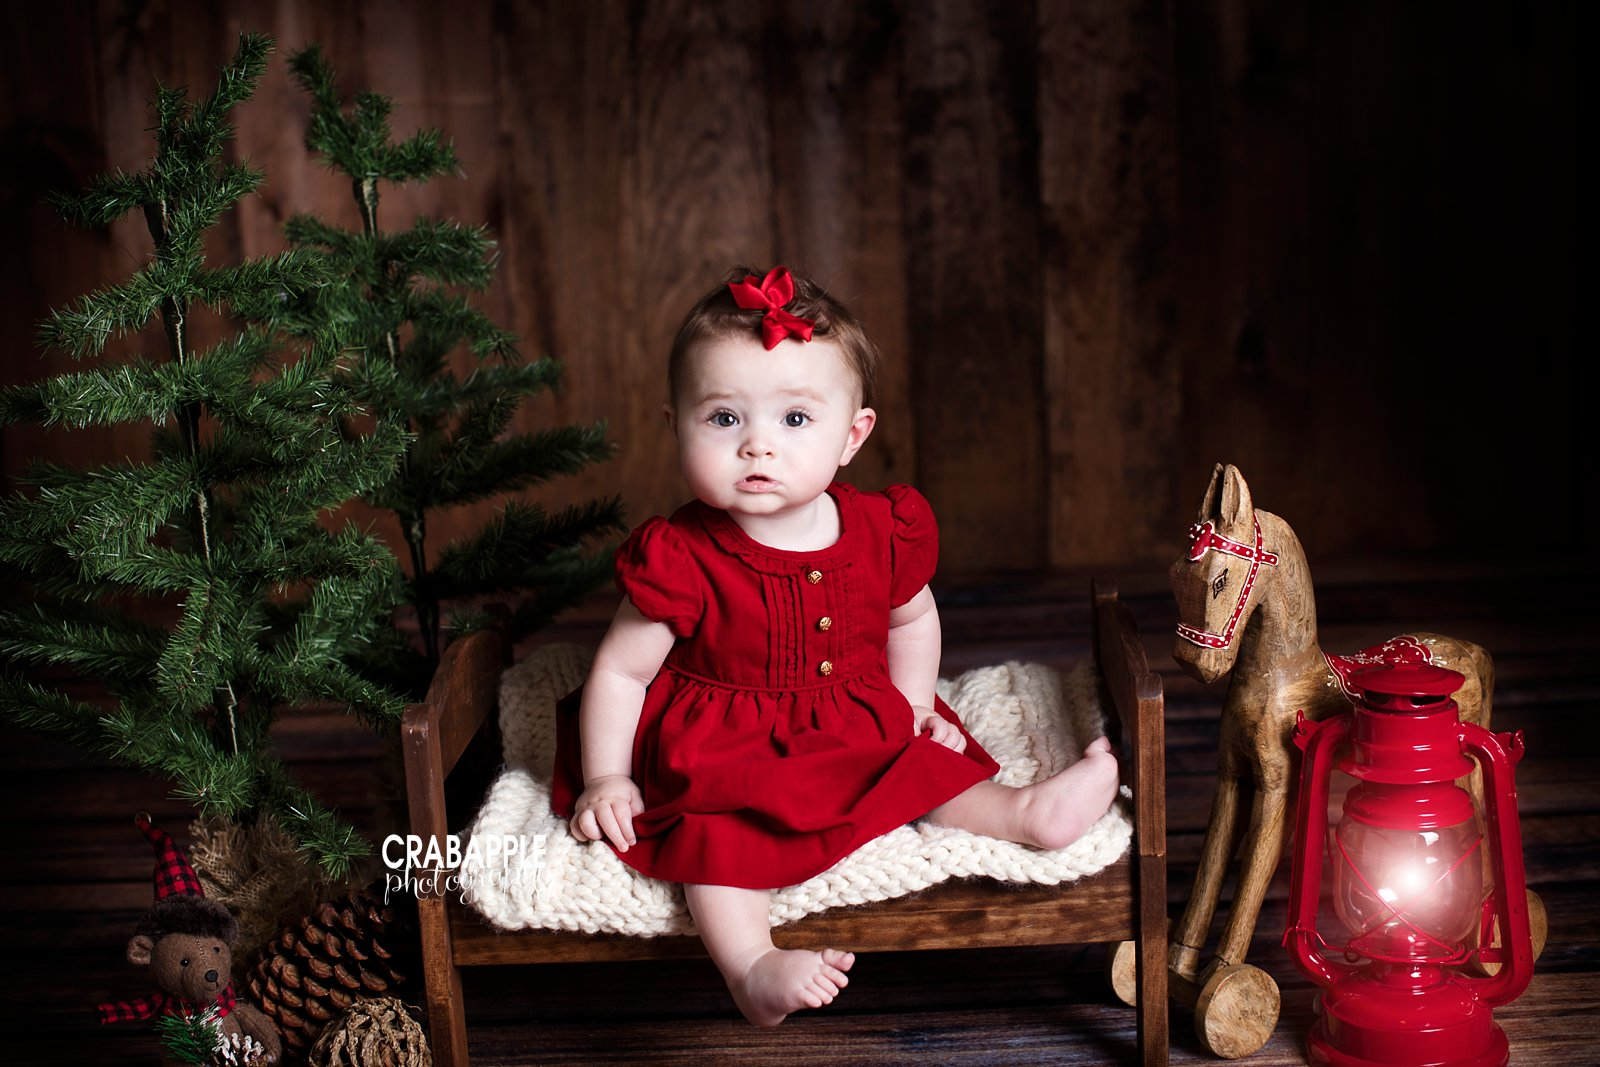 Christmas Themed Portraits Studio Sessions 183 Crabapple